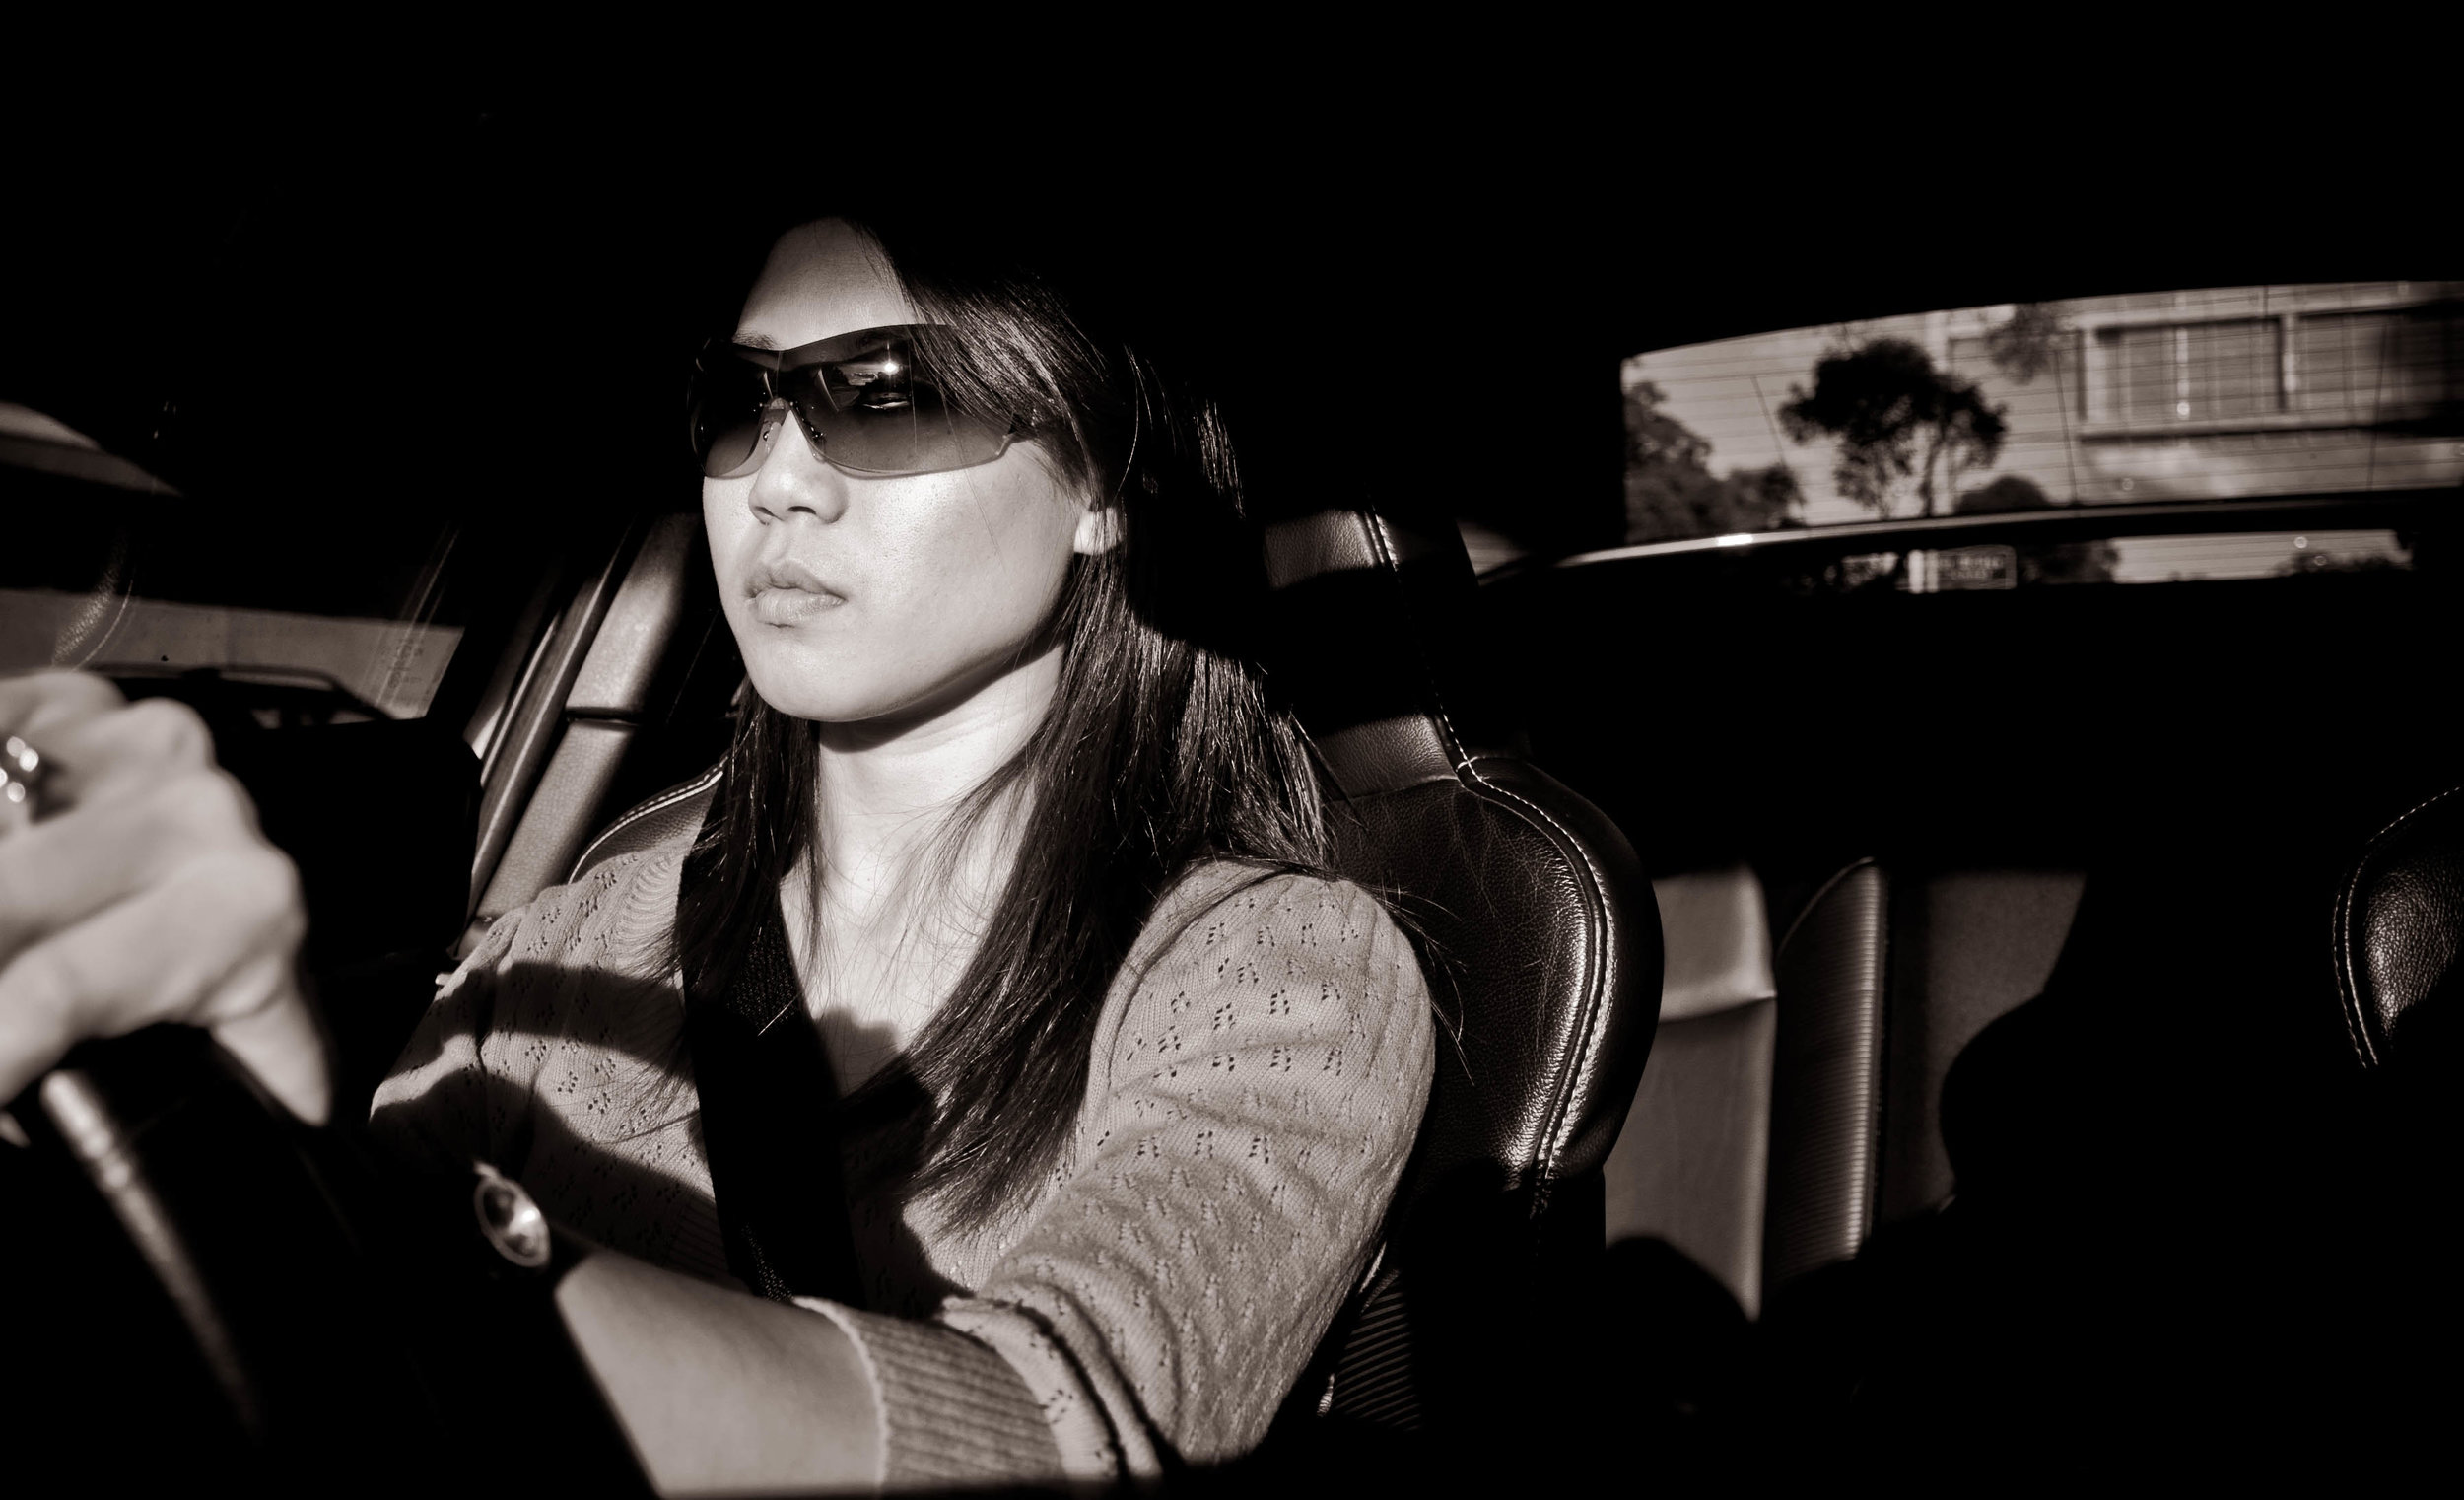 A woman driving a car. Image credit:  Eric Chu / Creative Commons